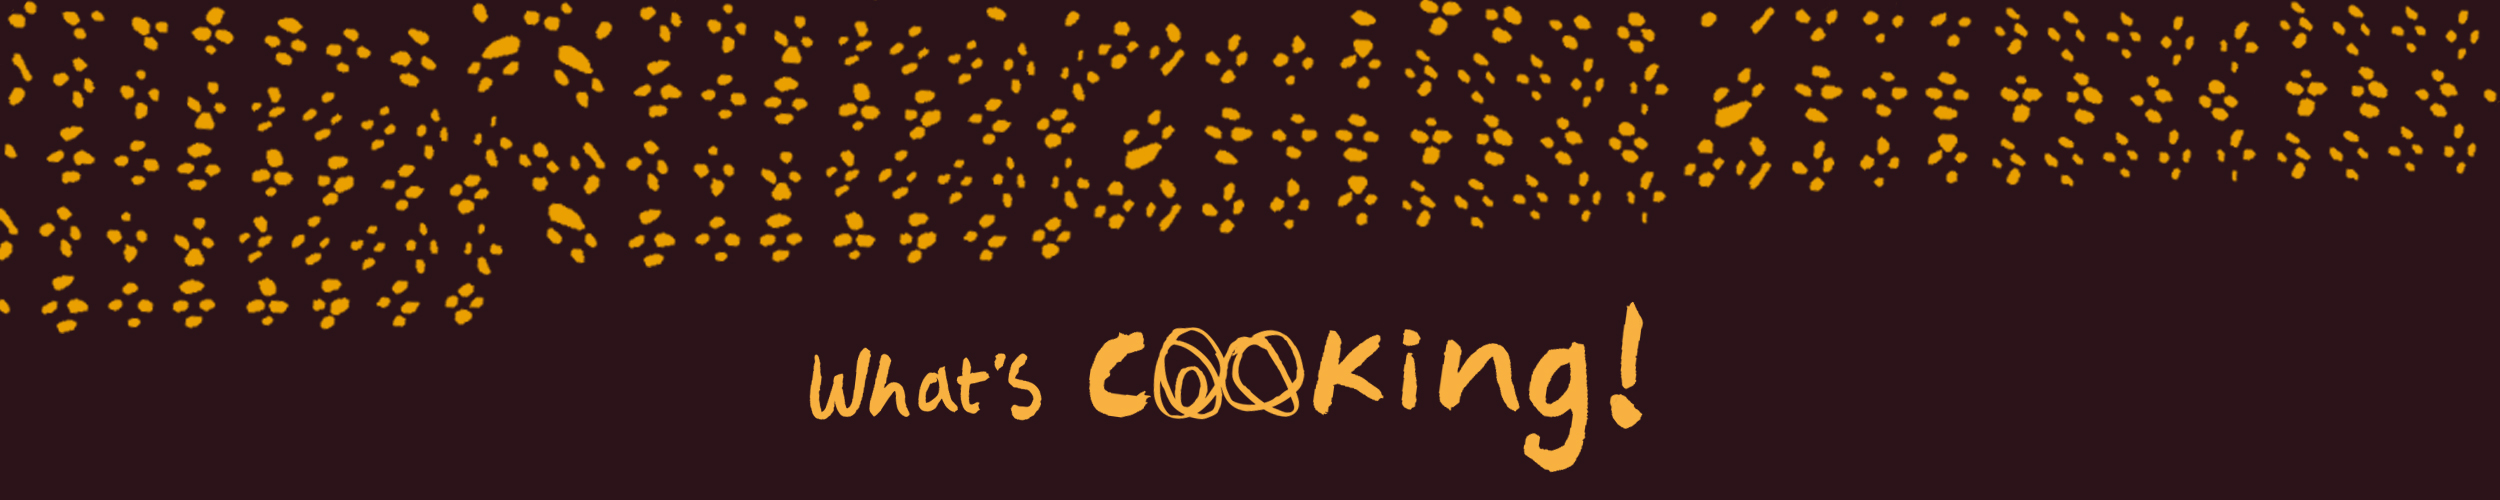 Whats-cooking-for-web.jpg